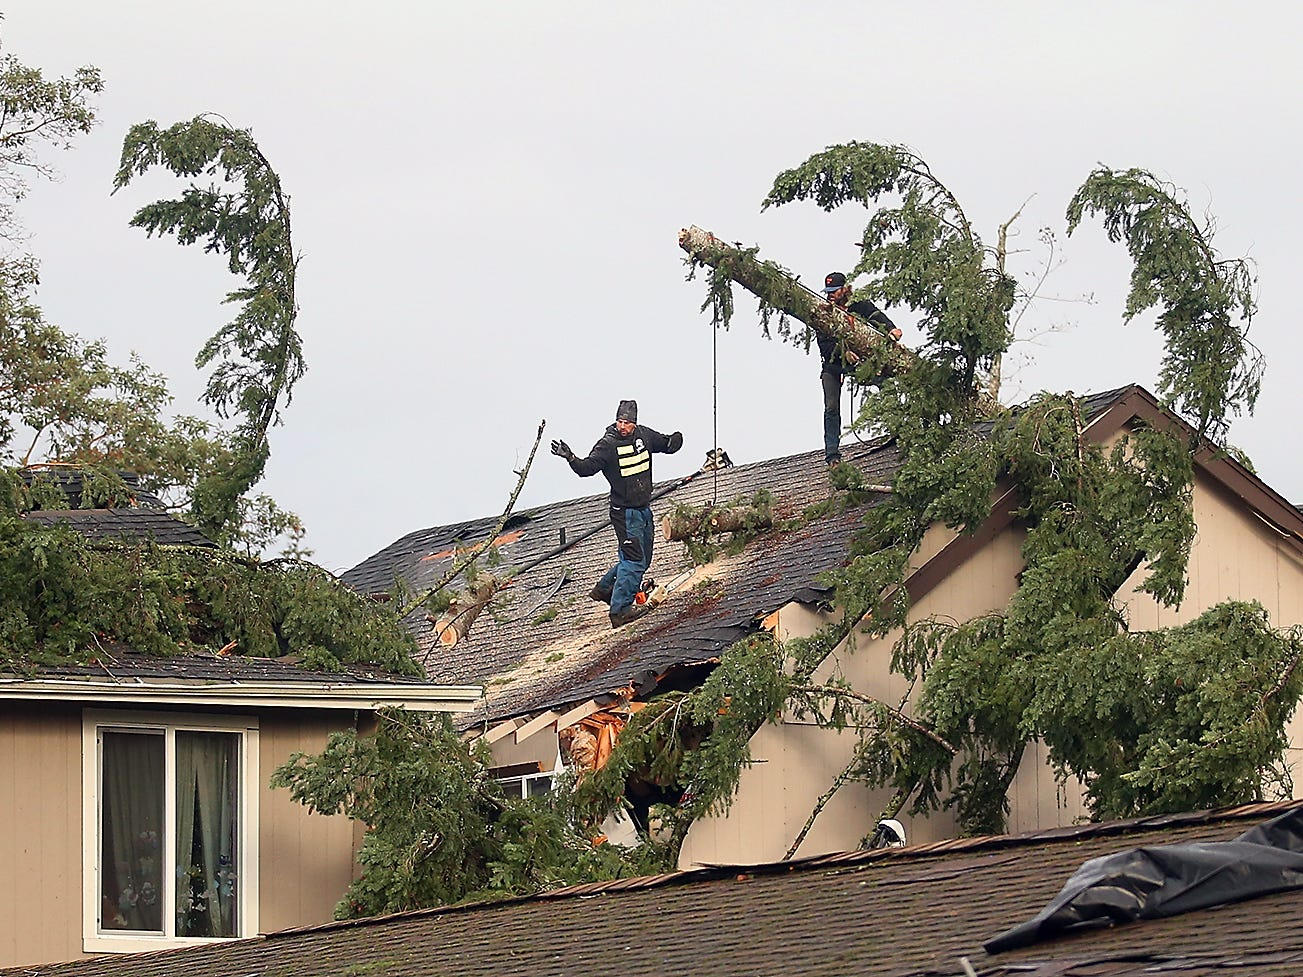 Tree crews work to remove trees from the roofs of homes on SE Upchurch Way in Port Orchard on Wednesday, December 19, 2018.